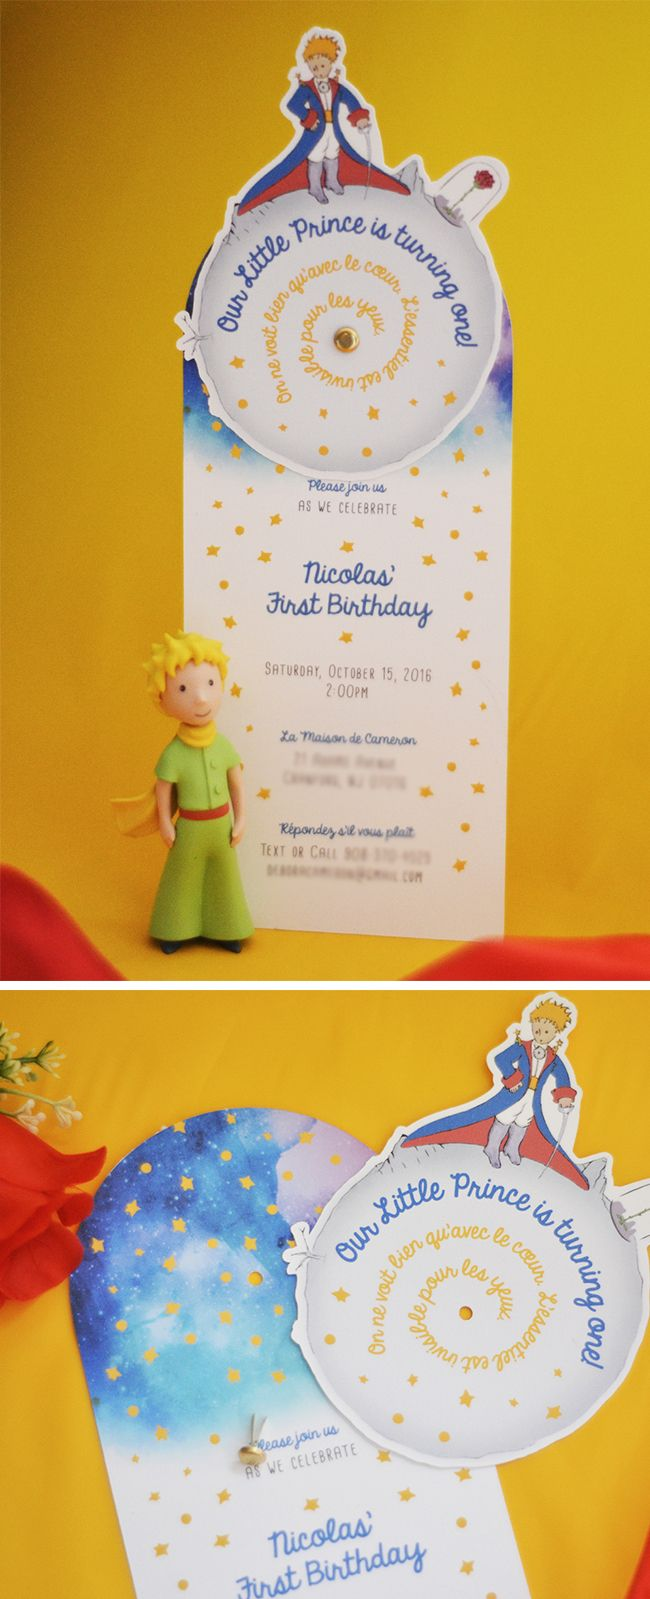 wording0th birthday party invitation%0A Le Petit Prince Party Invitation and Decorations by The Blush Market